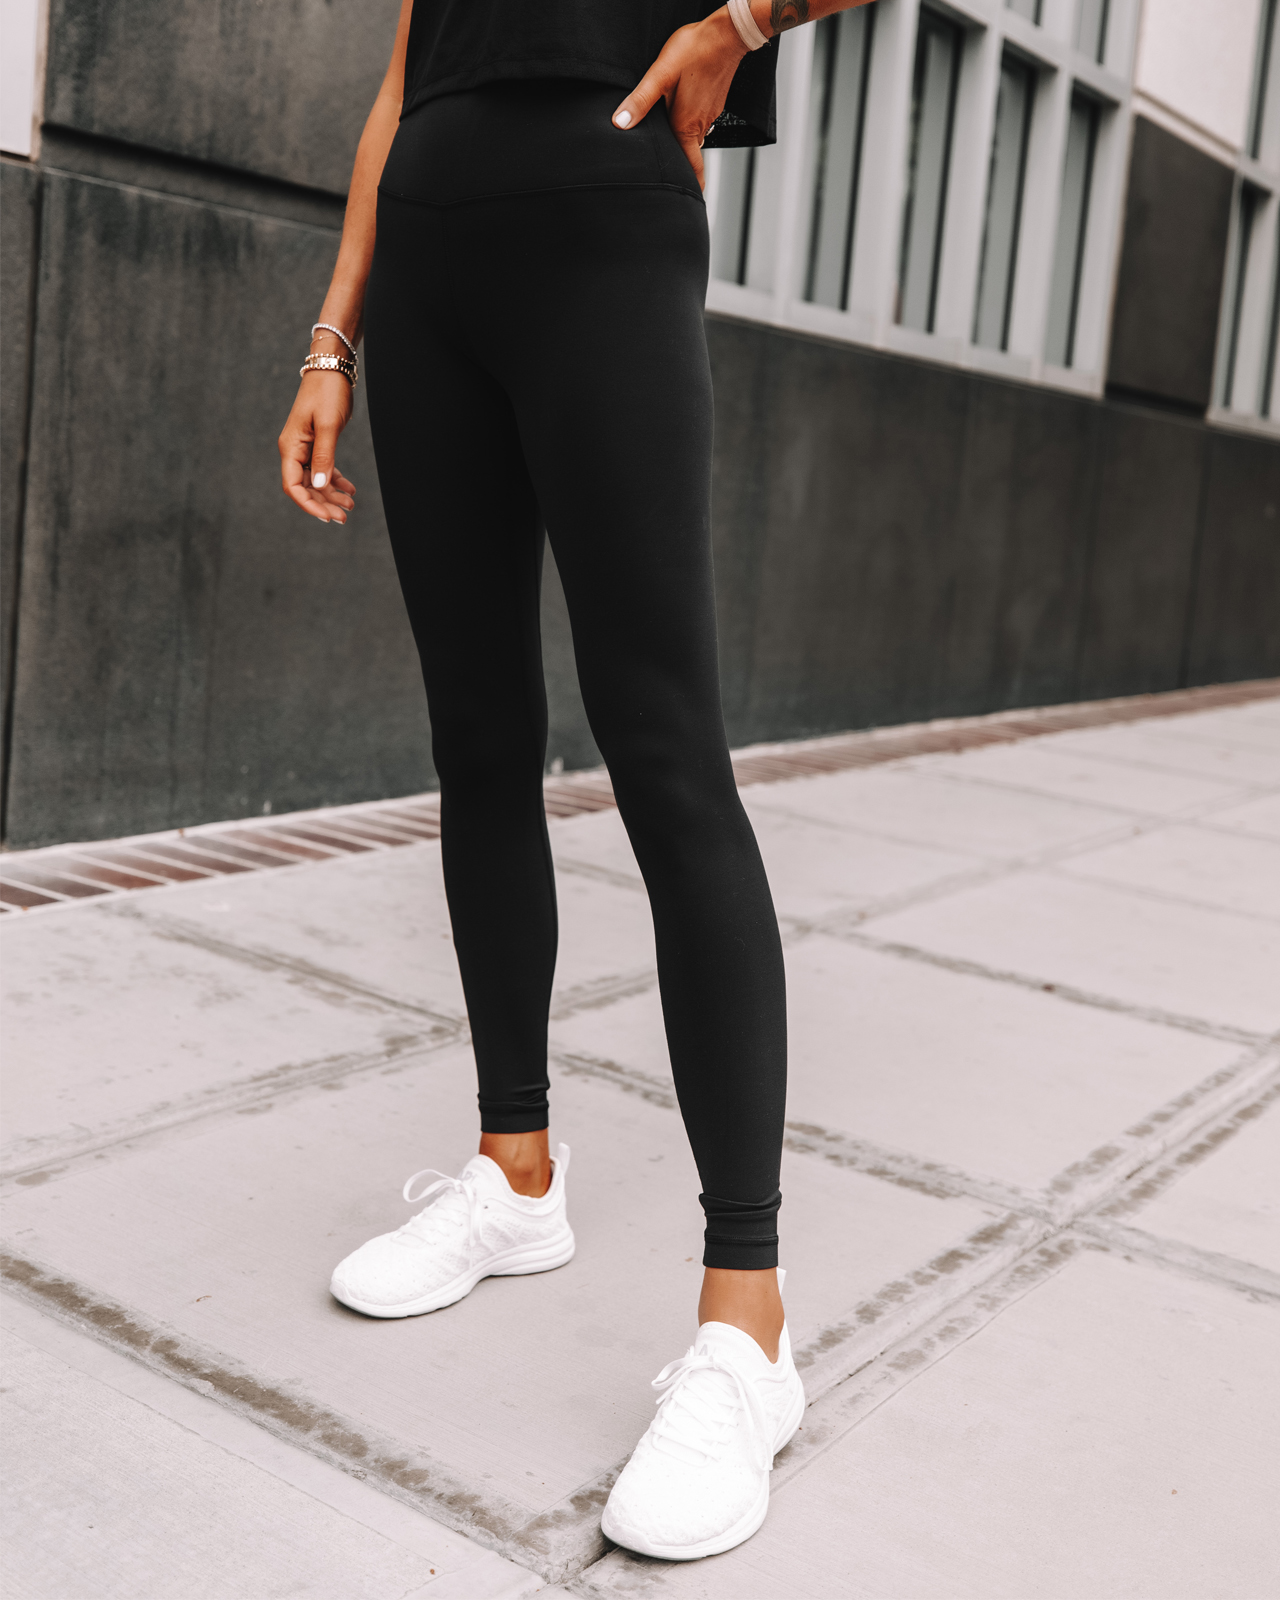 Fashion Jackson Wearing lululemon Align Black Leggings APL White Sneakers